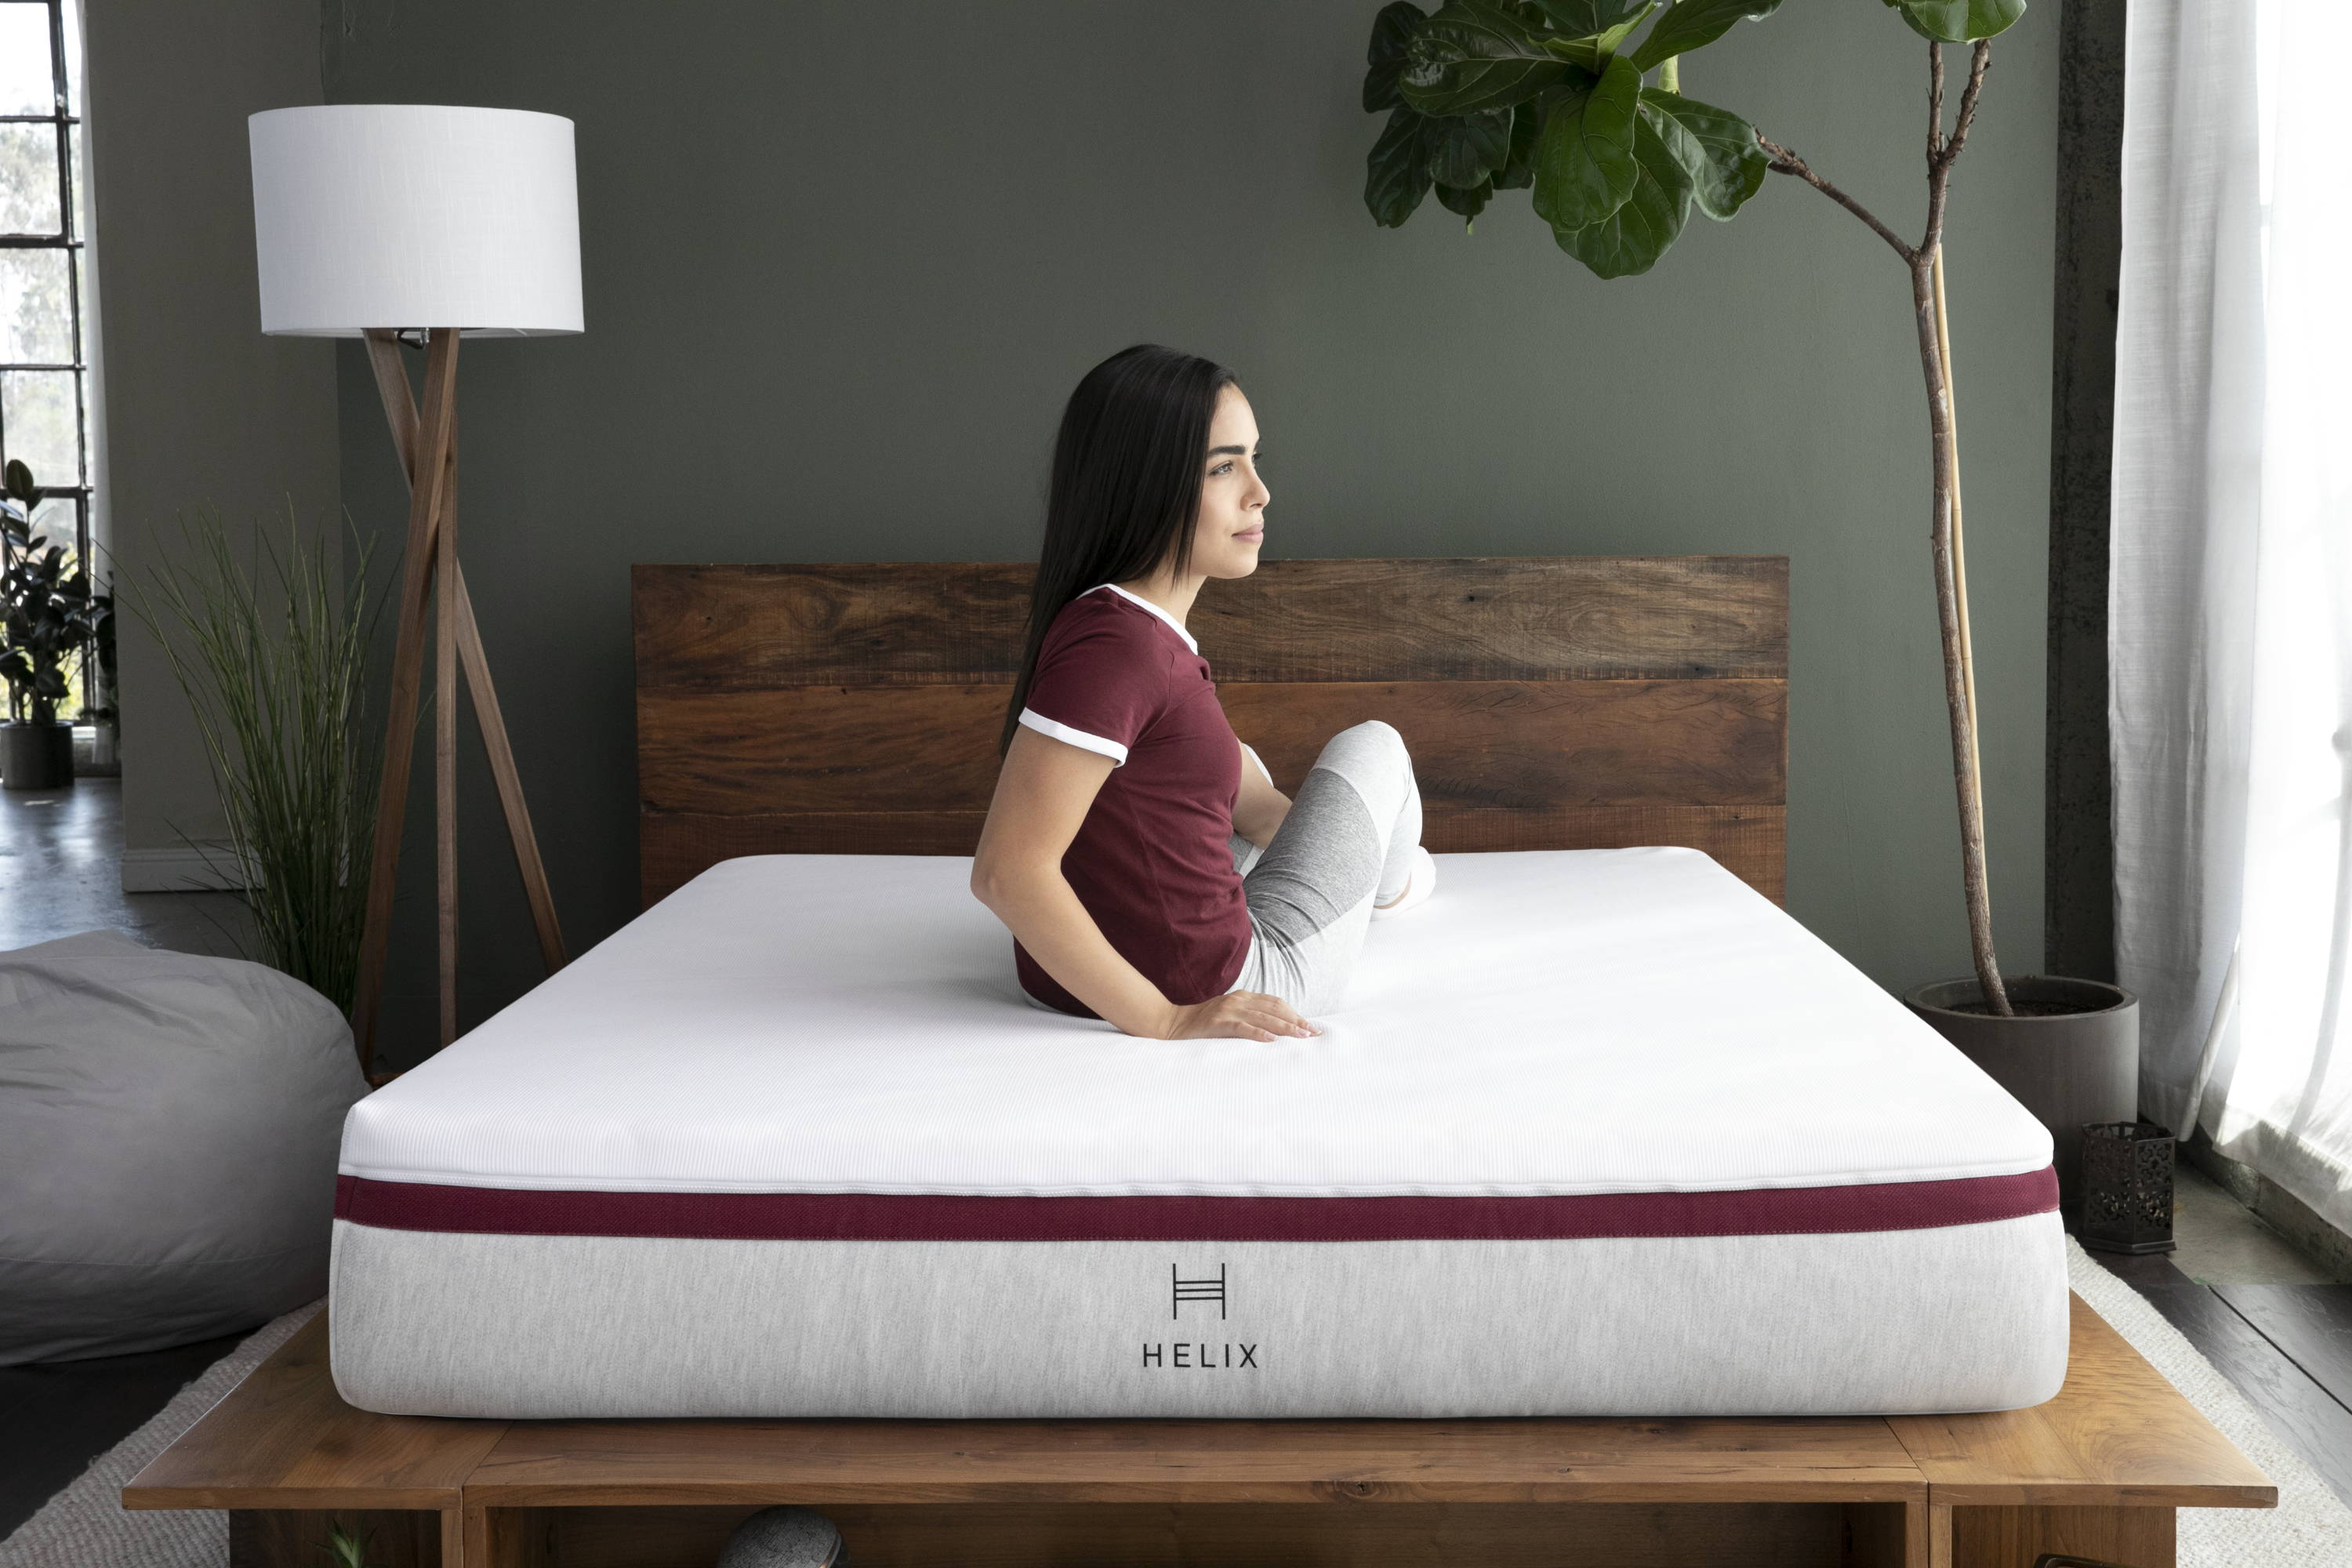 A woman stretching and relaxing on her new Helix Dusk Mattress